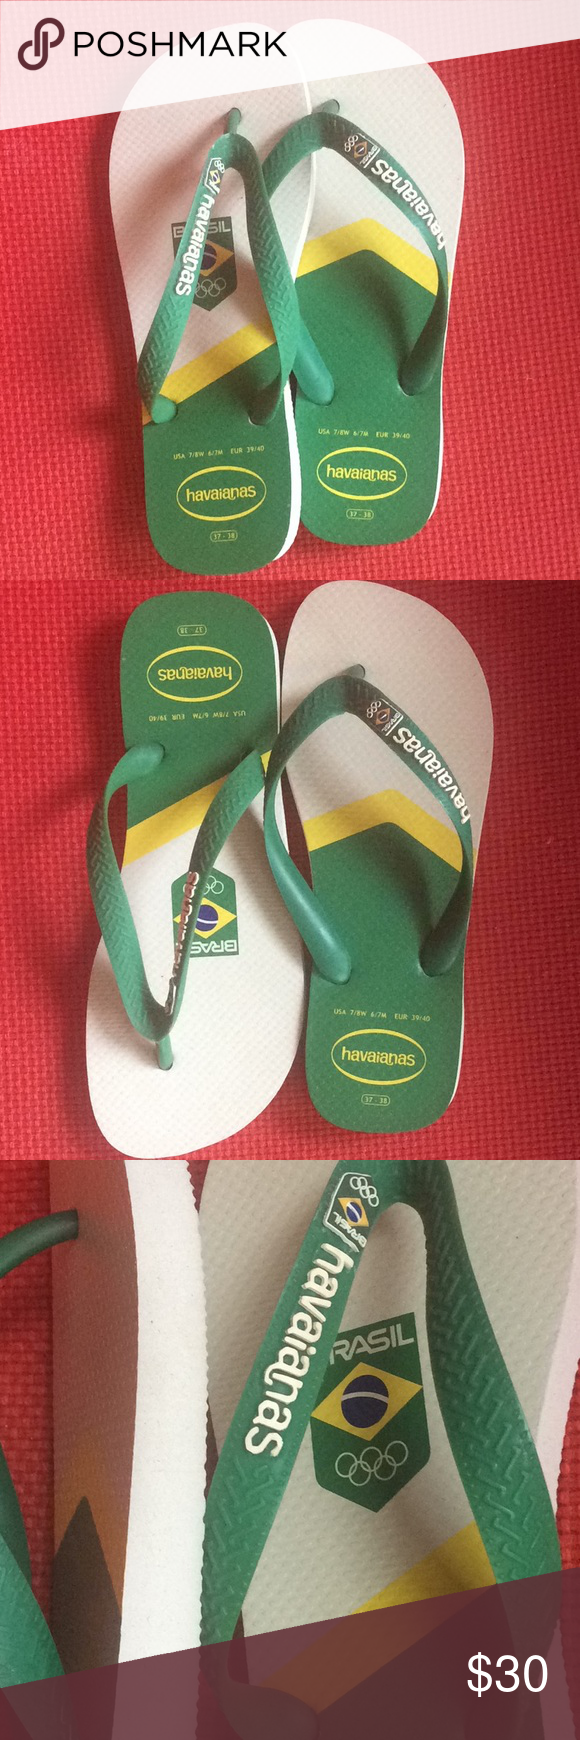 5d5d902b6d3aa Havaianas Flip Flops - Rio 2016 Olympics Edition This is a pair of  Brazilian Flip Flops Havaianas - a limited edition that was made for the  Olympics in Rio ...